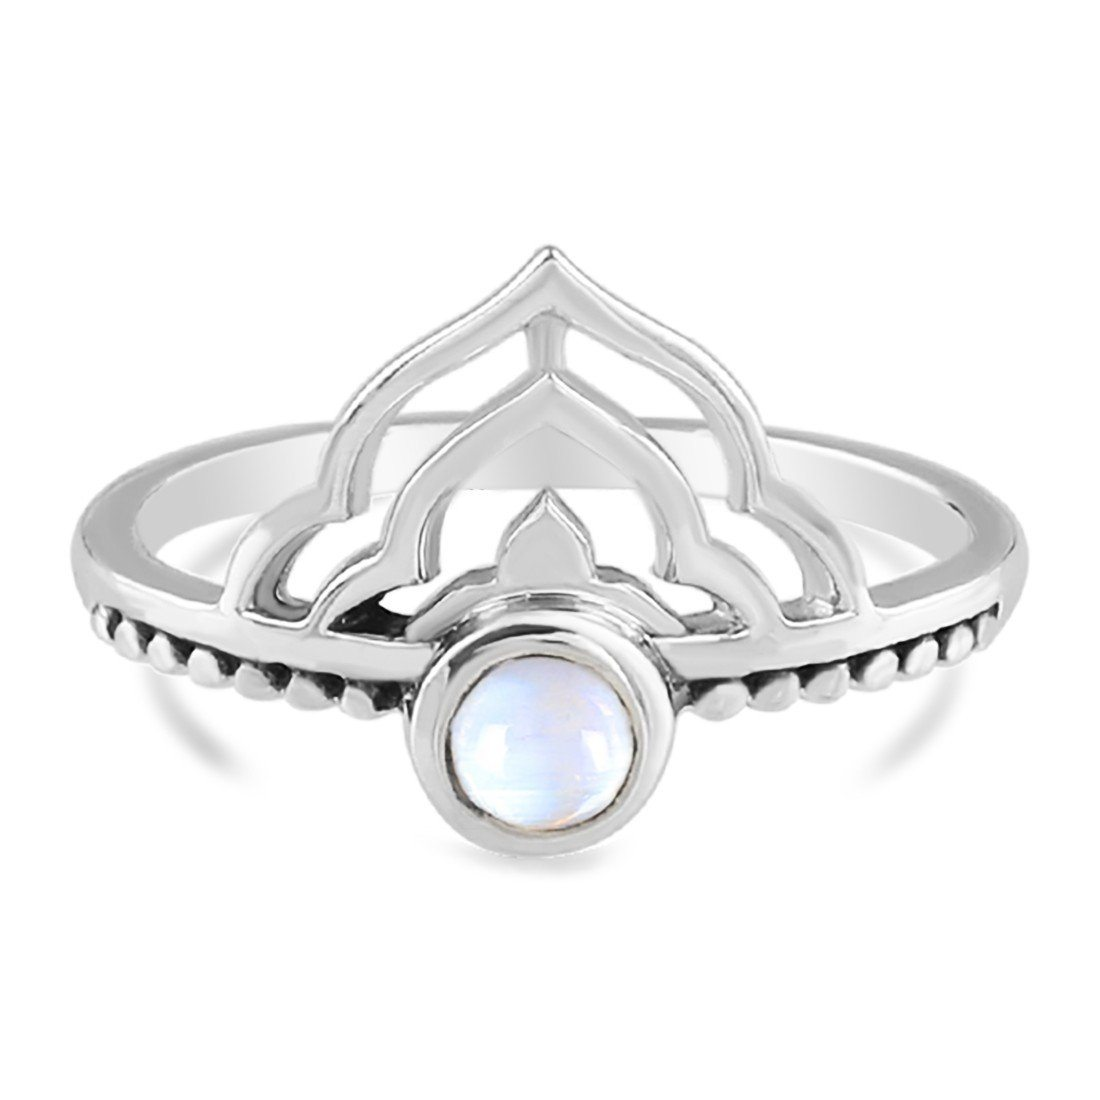 Moonstone Ring-Brilliant Crown Moonstone Ring 925 SILVER & MOONSTONE